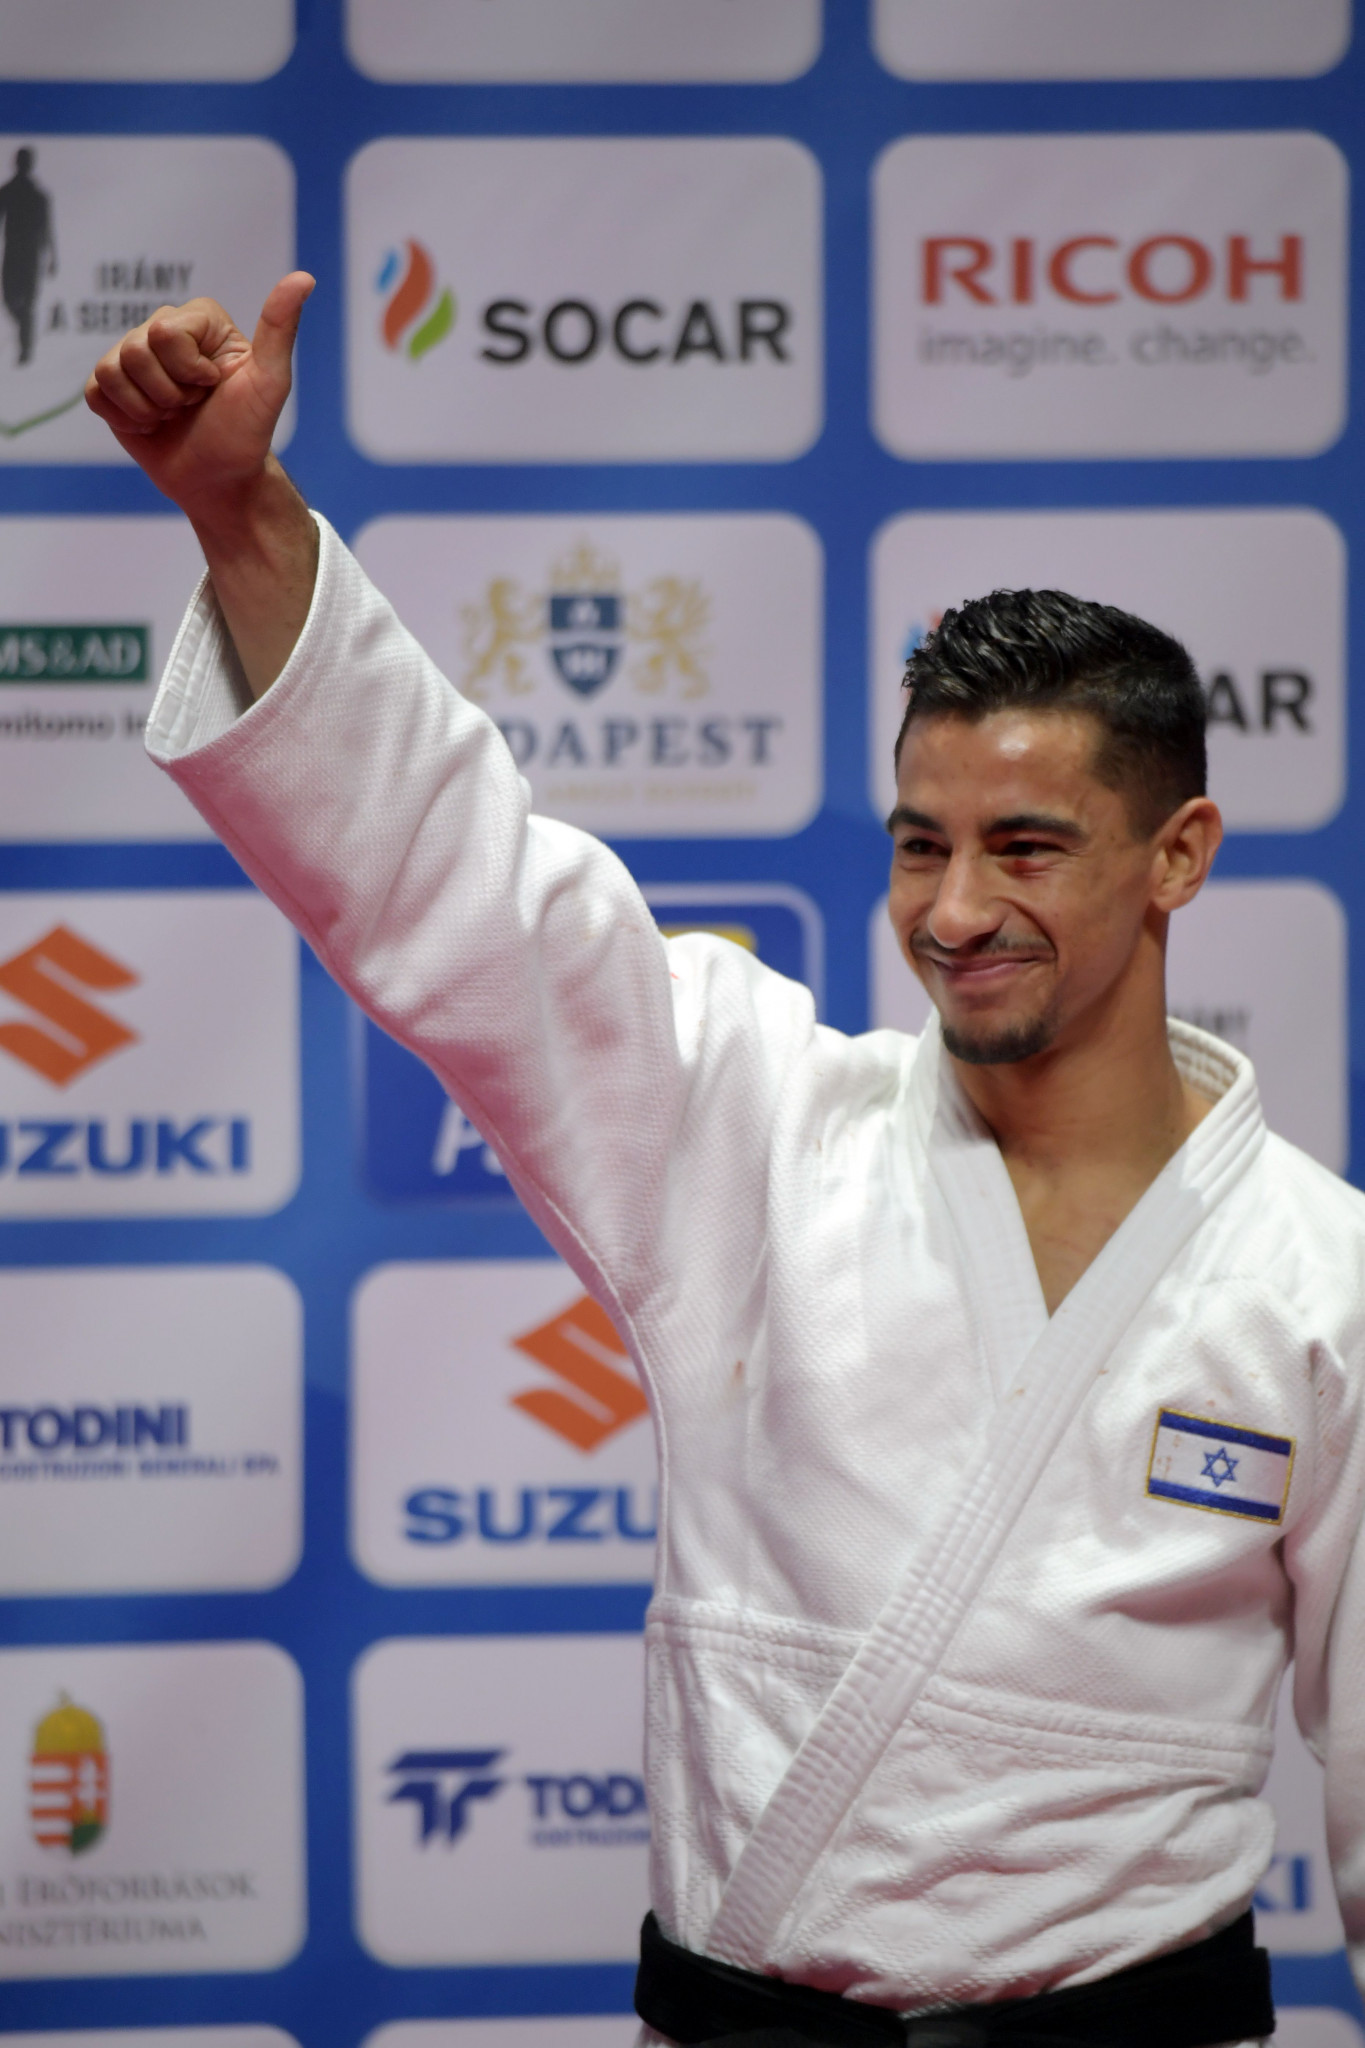 Tal Flicker's gold medal in Abu Dhabi last year came with Israel's flag and national anthem banned ©Getty Images